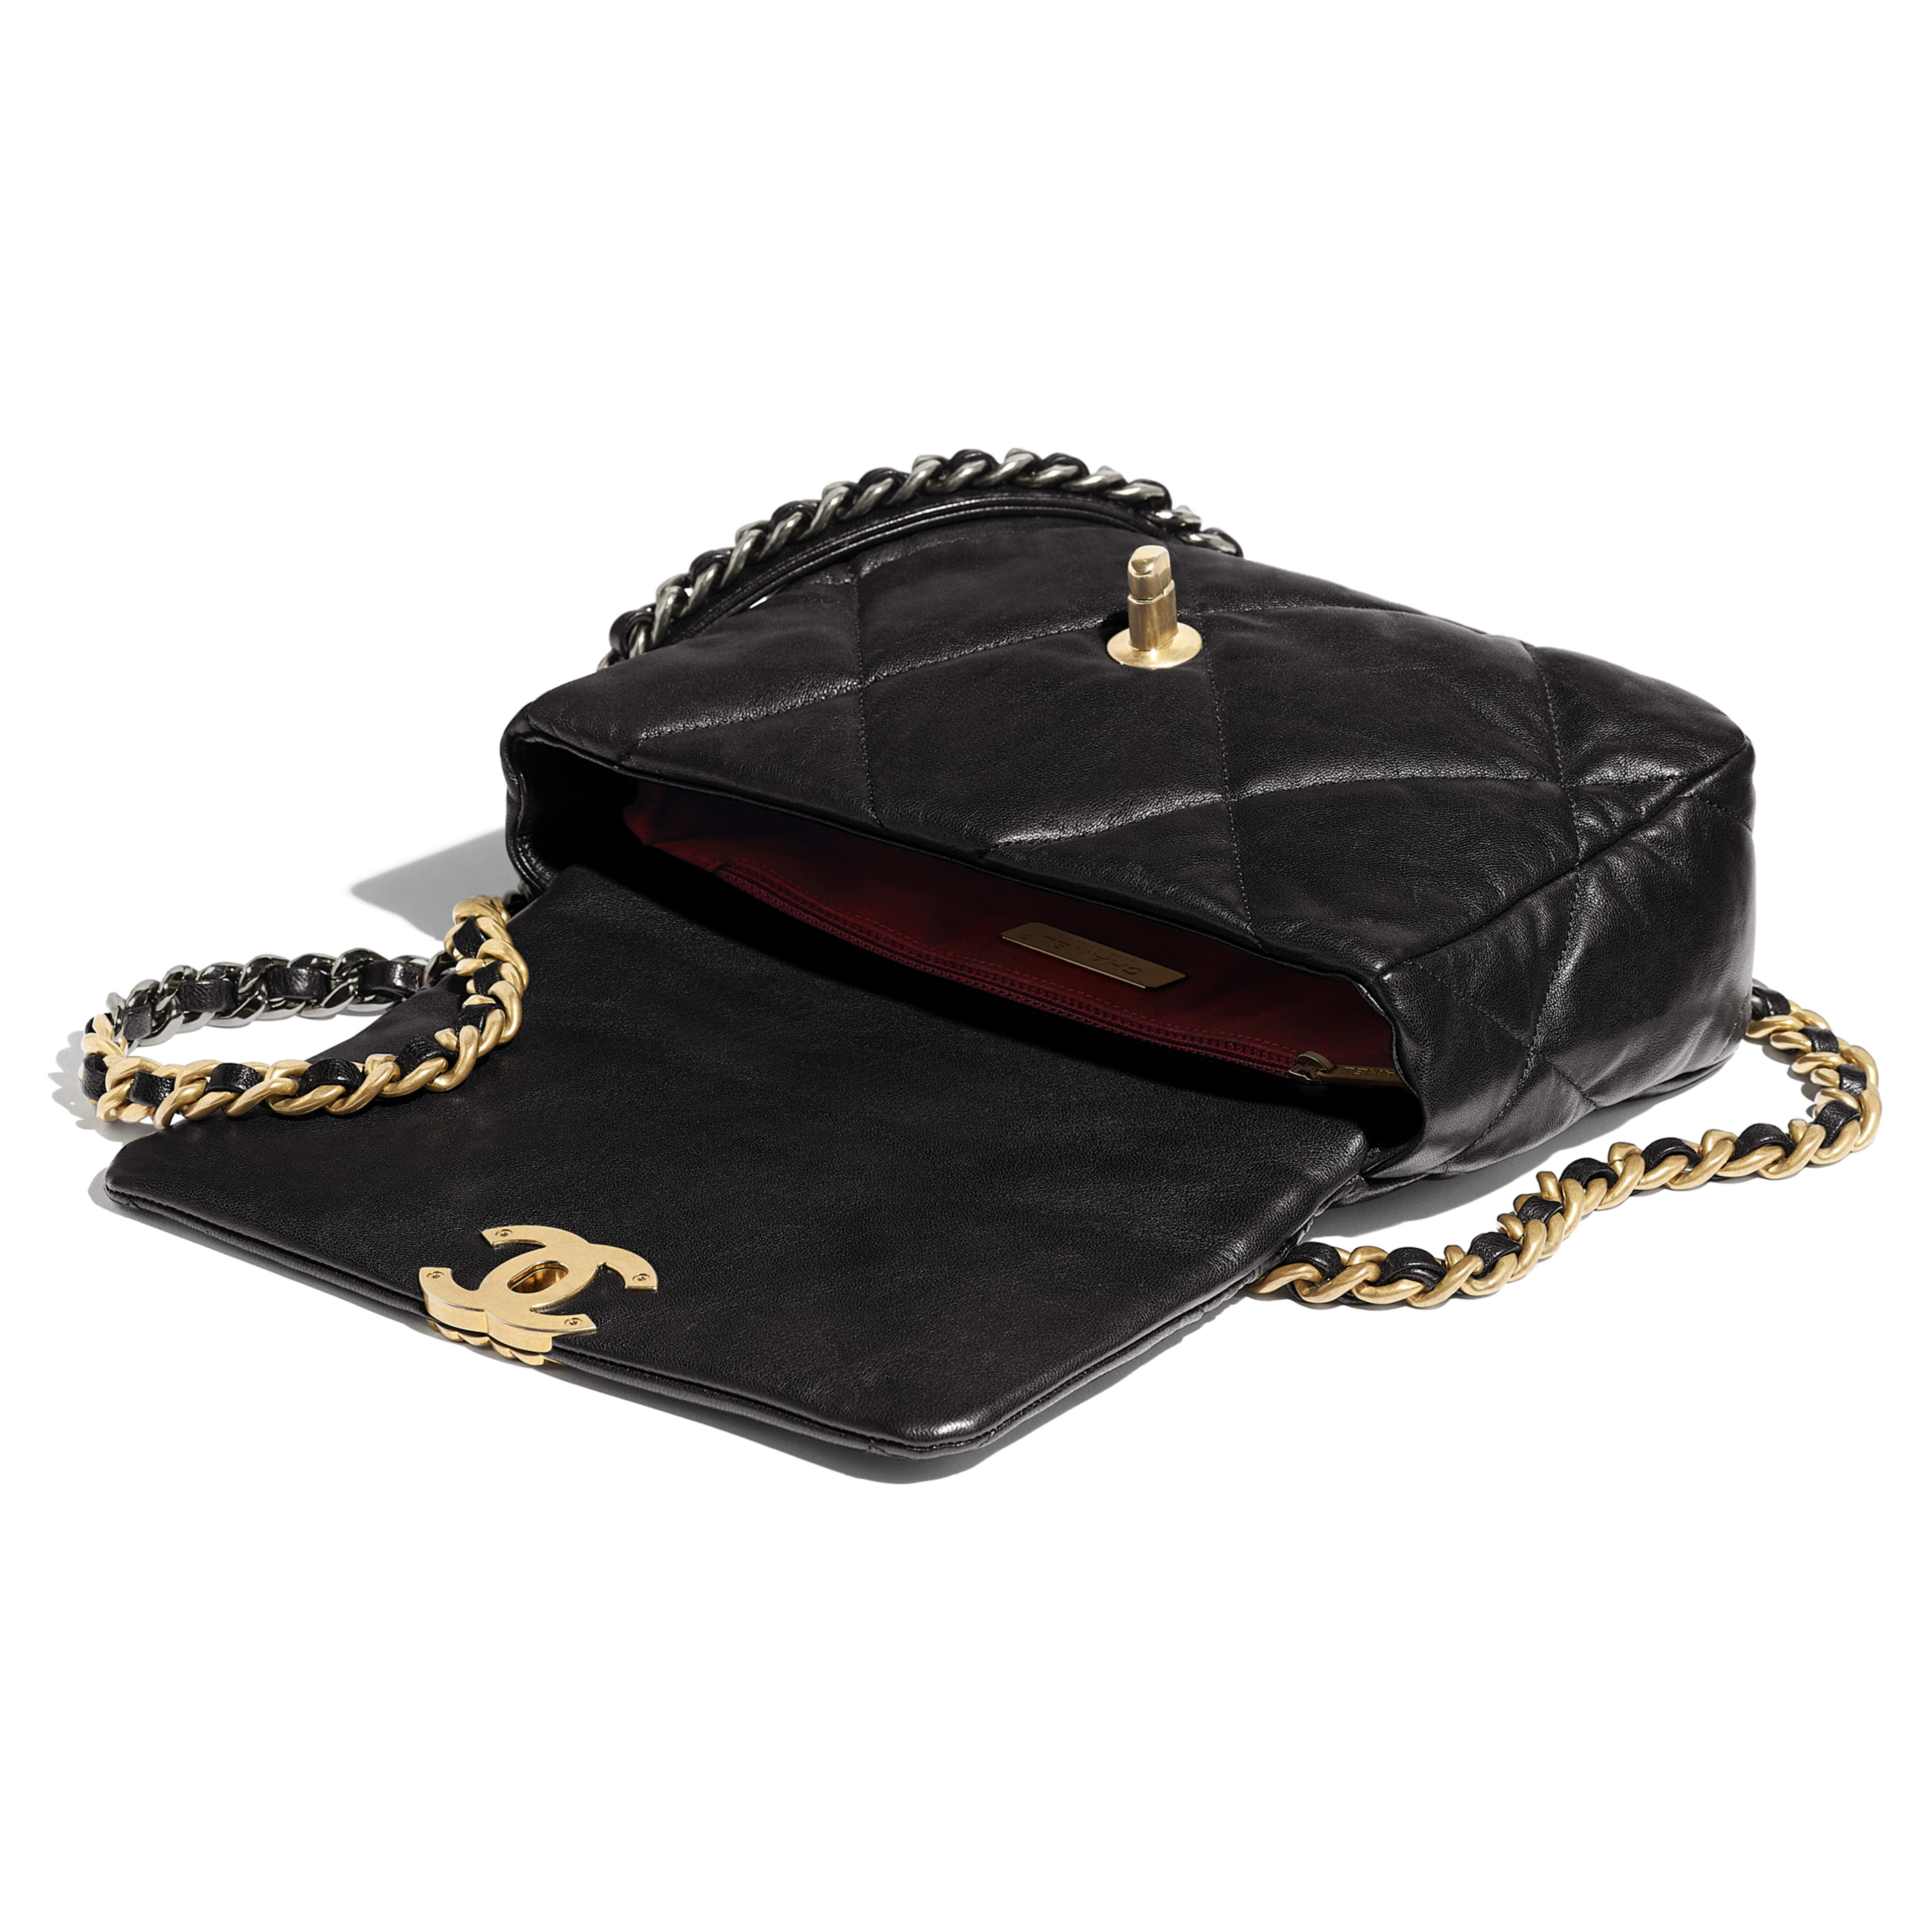 CHANEL 19 Flap Bag - Black - Lambskin, Gold-Tone, Silver-Tone & Ruthenium-Finish Metal - Other view - see full sized version